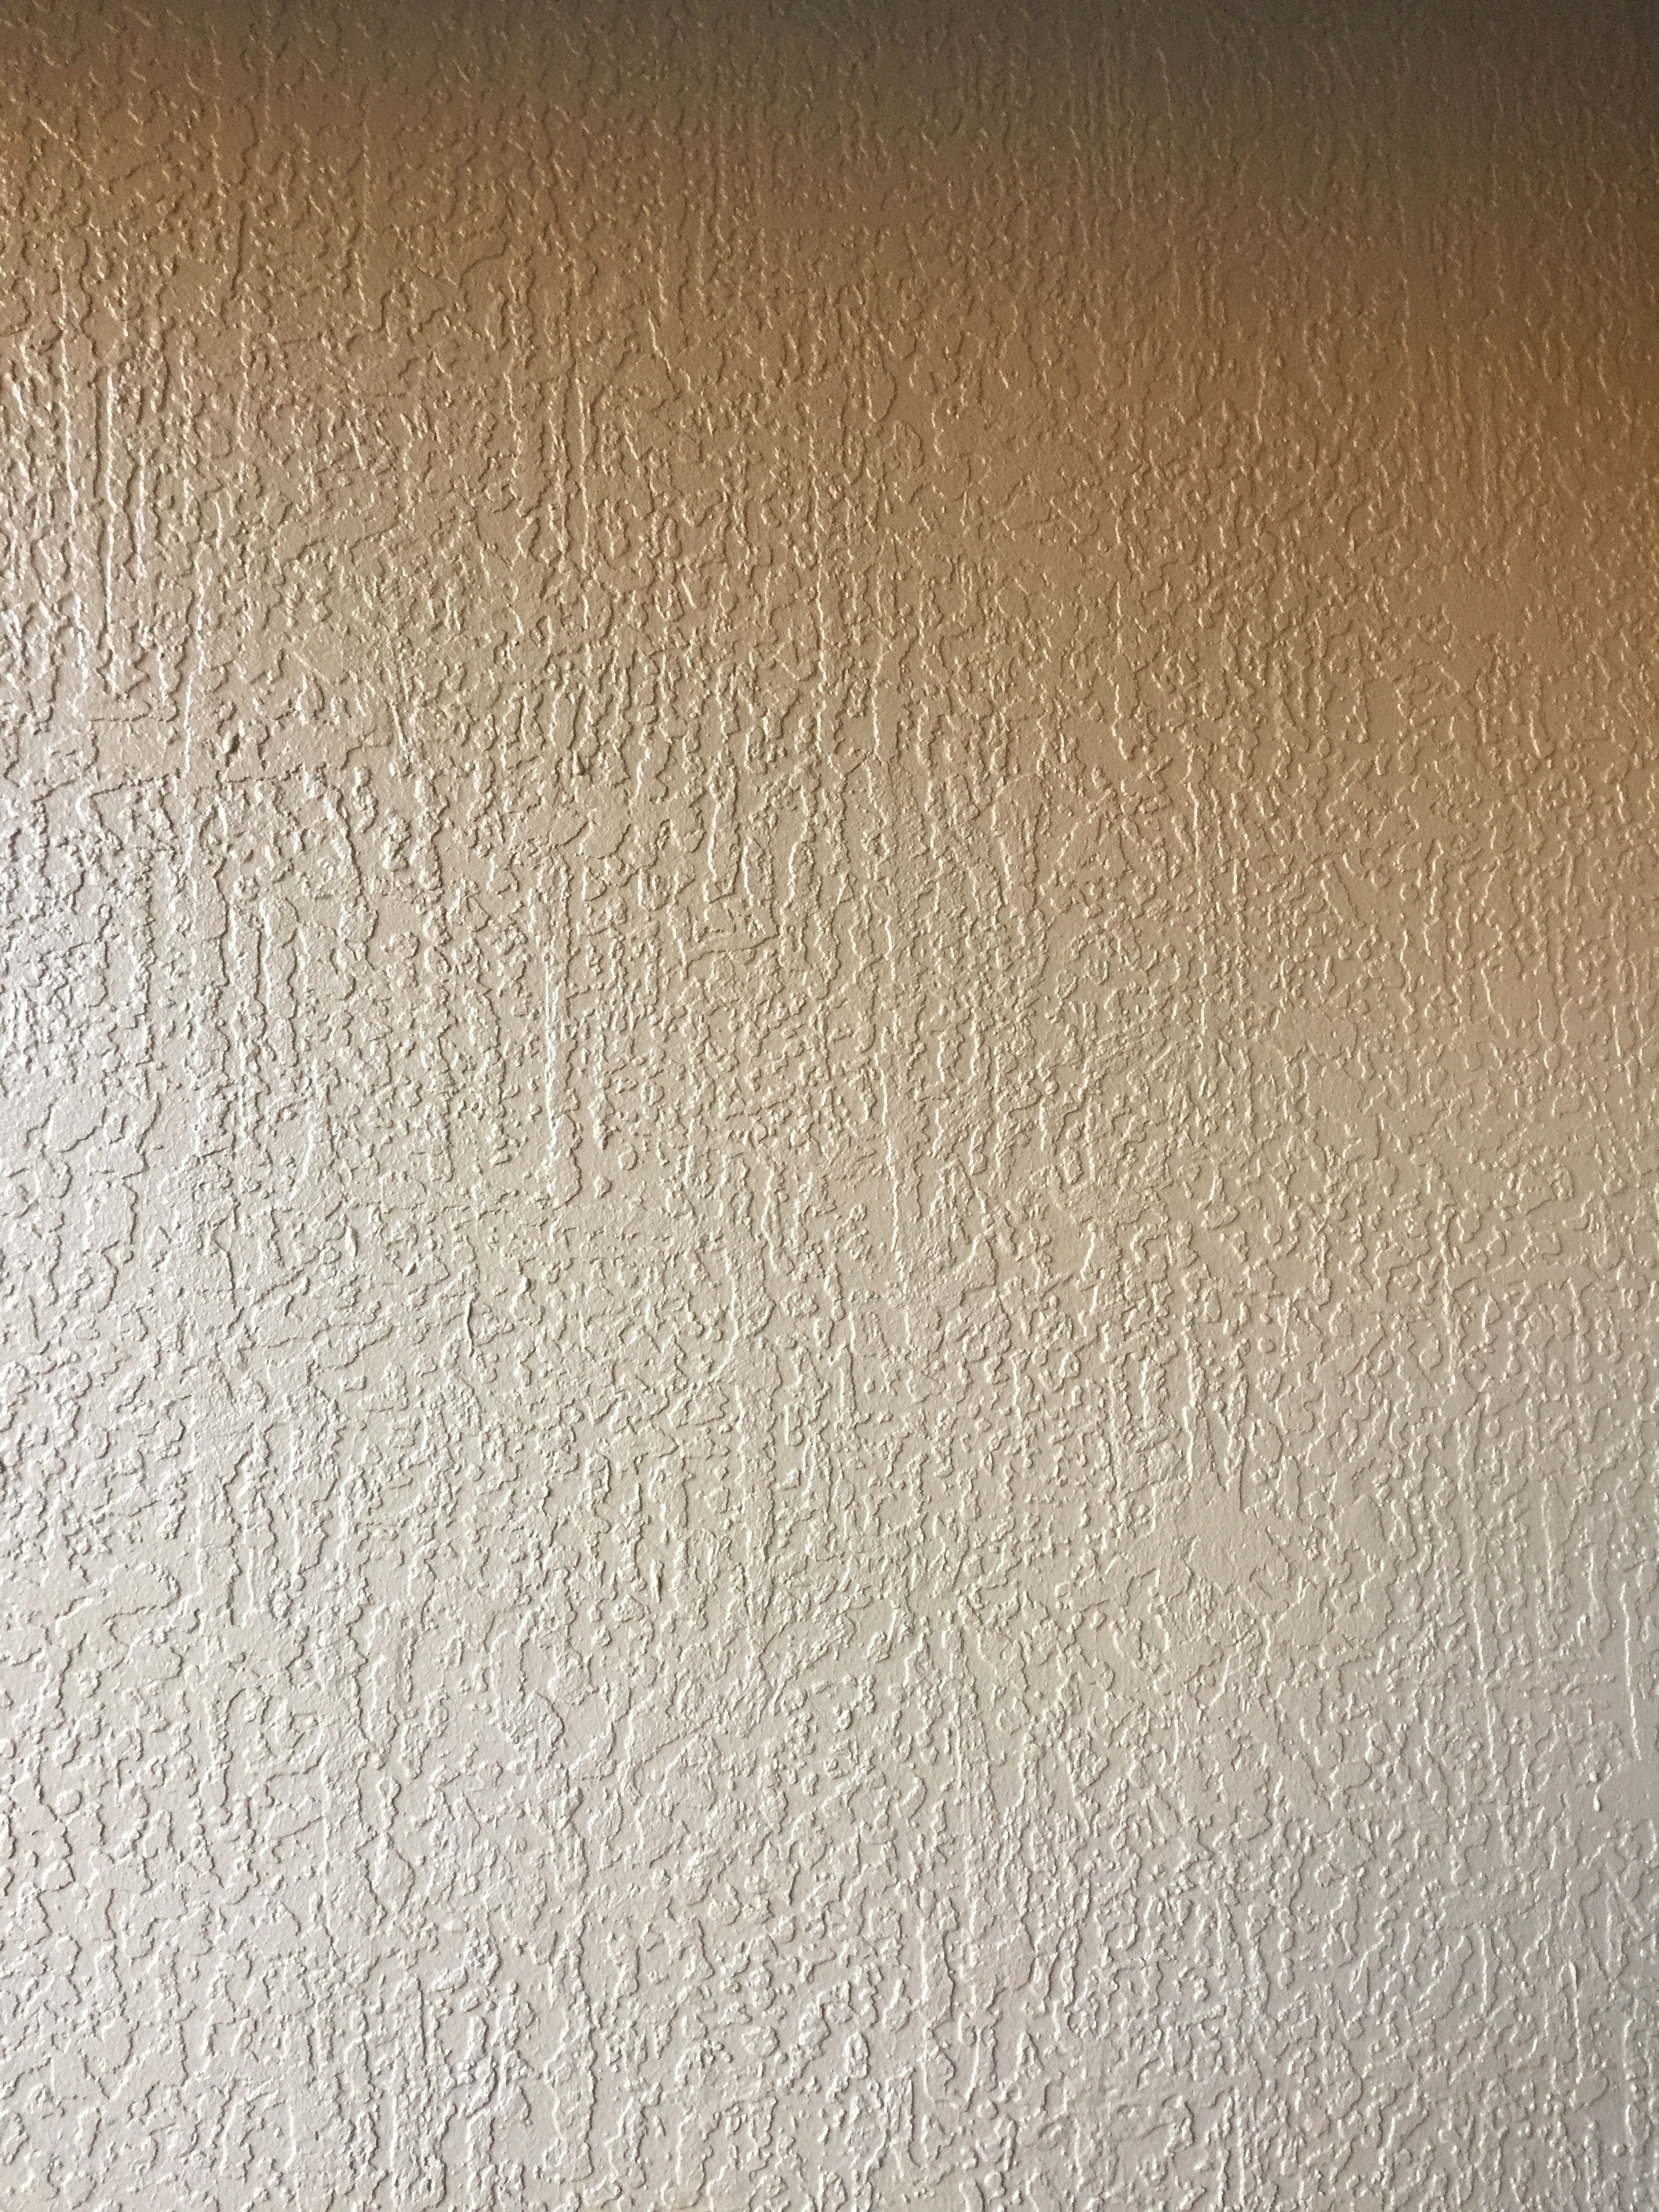 Wall Stucco Texture Paint free image